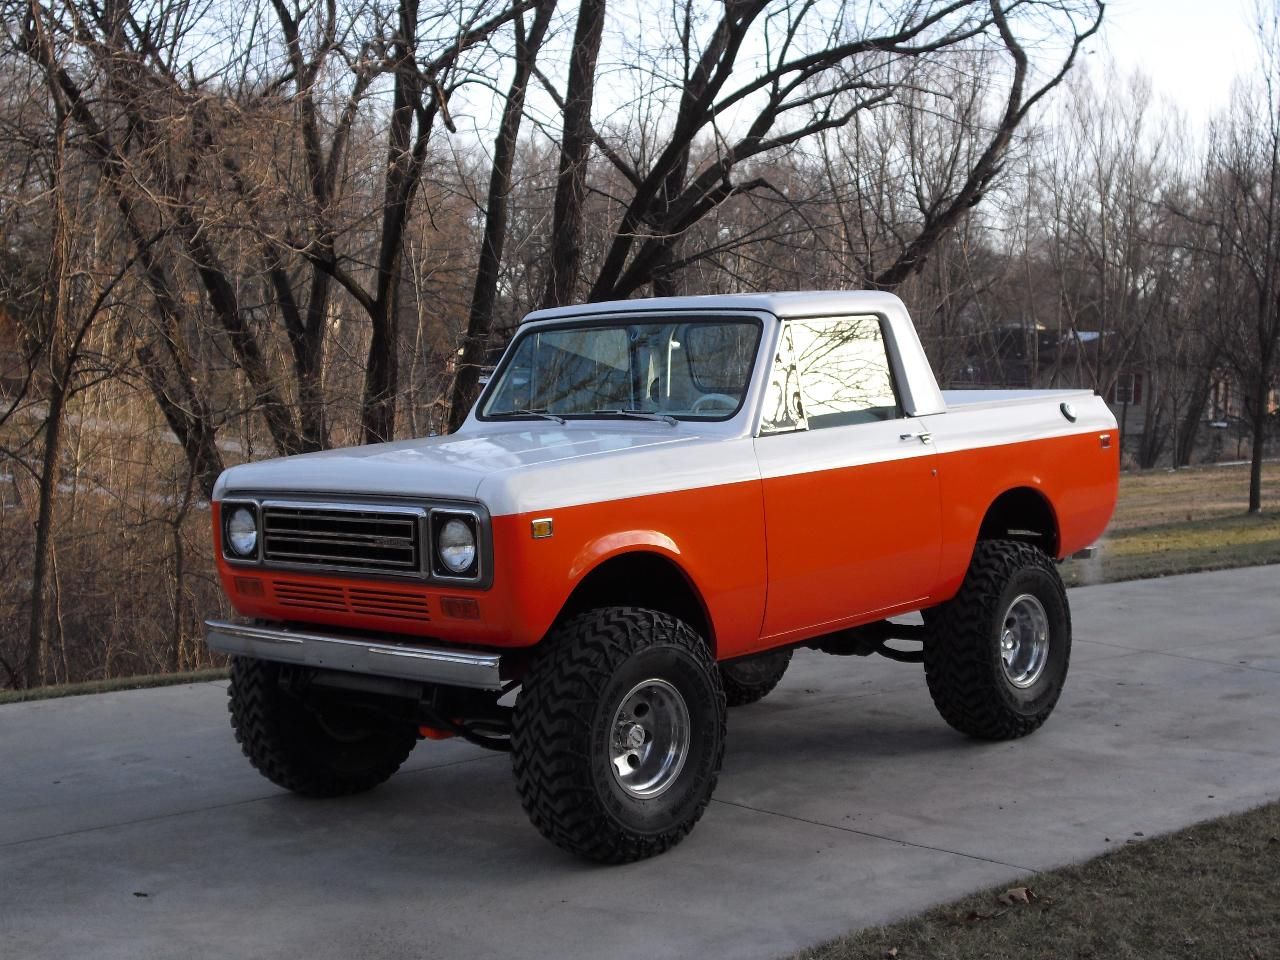 TMKdesign 1977 International Scout II 14183538